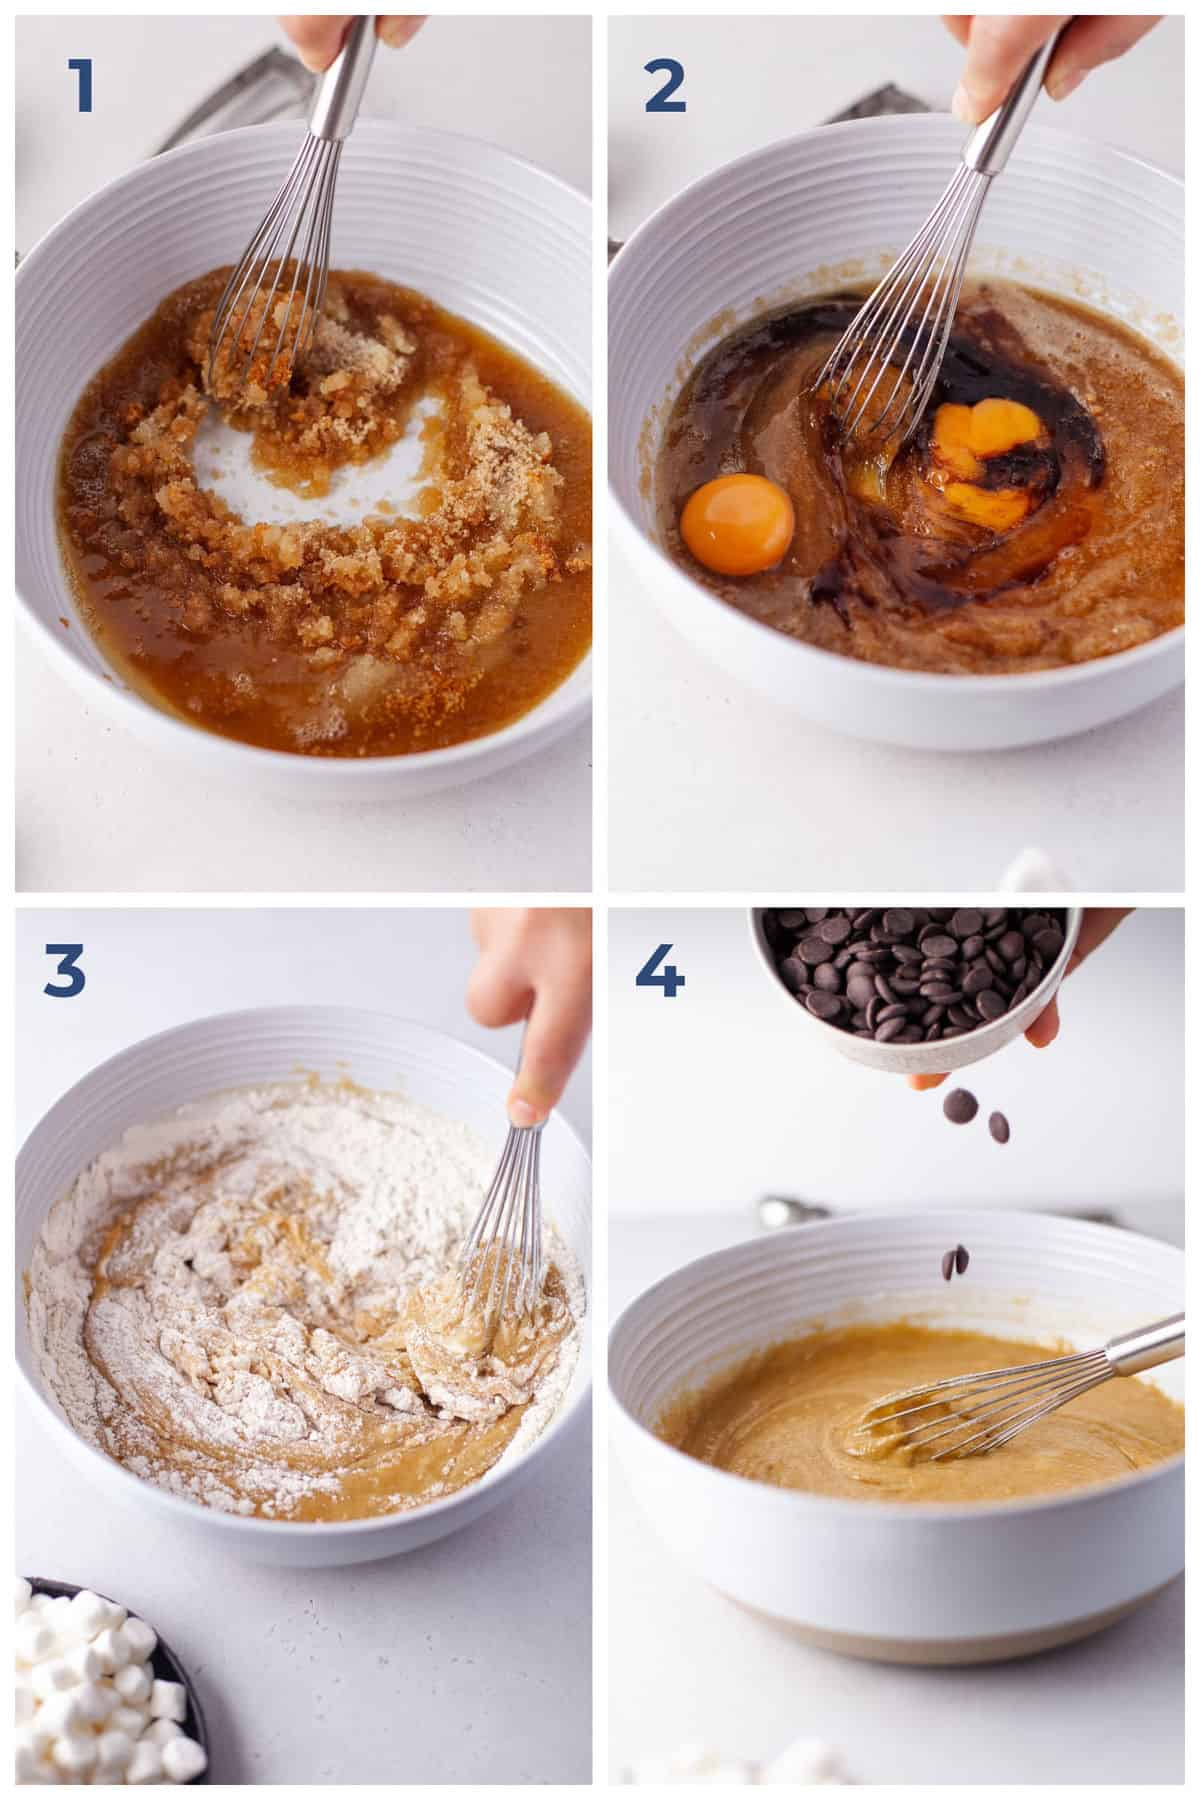 Step by Step Instructions for making Chewy Marshmallow Chocolate Chip Cookies